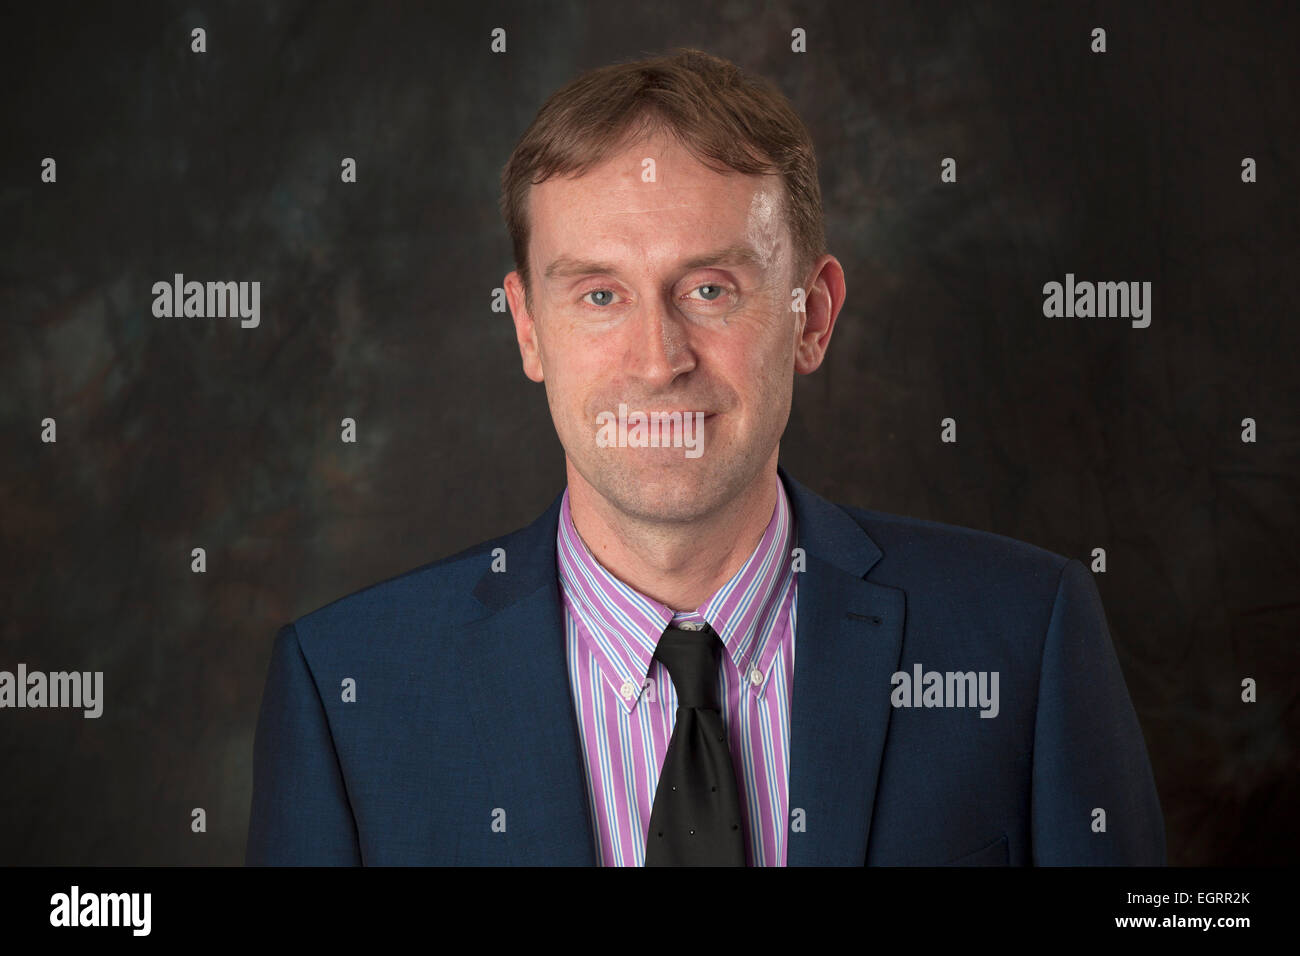 Walsall, West Midlands, UK. 1st March 2015. Chris Perry Director of Programmes at the new Big Centre TV channel. - Stock Image